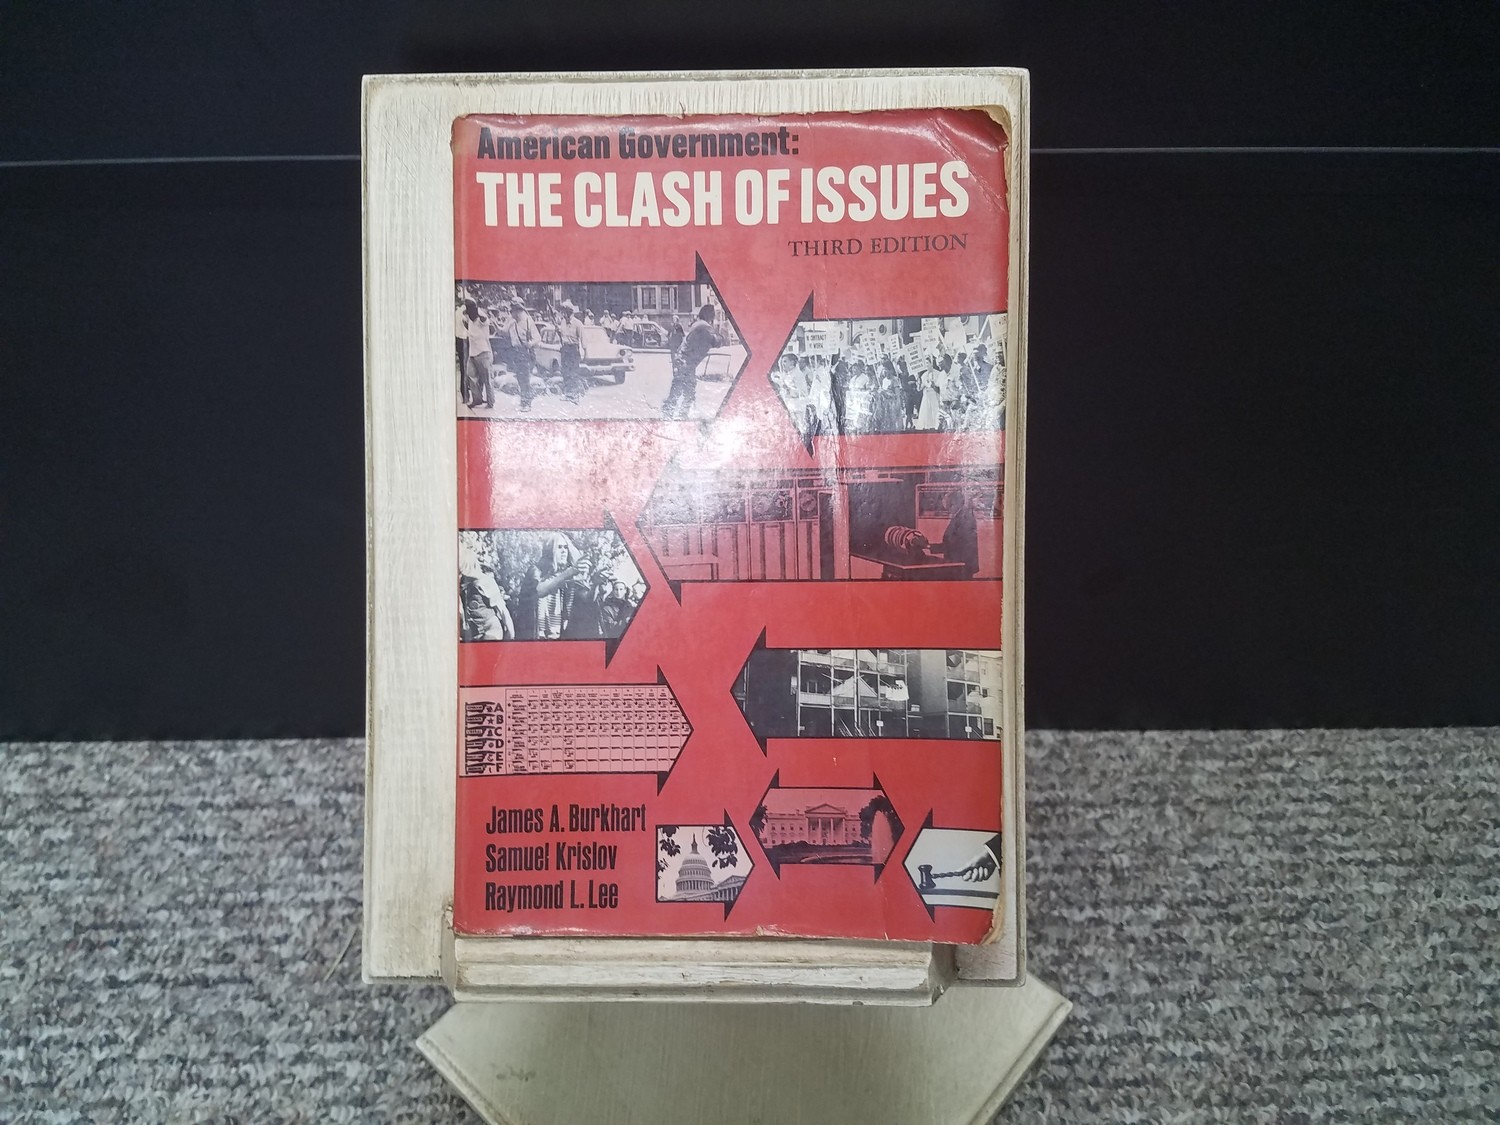 The Clash of Issues by James A. Burkhart, Samuel Krislov, and Raymond L. Lee